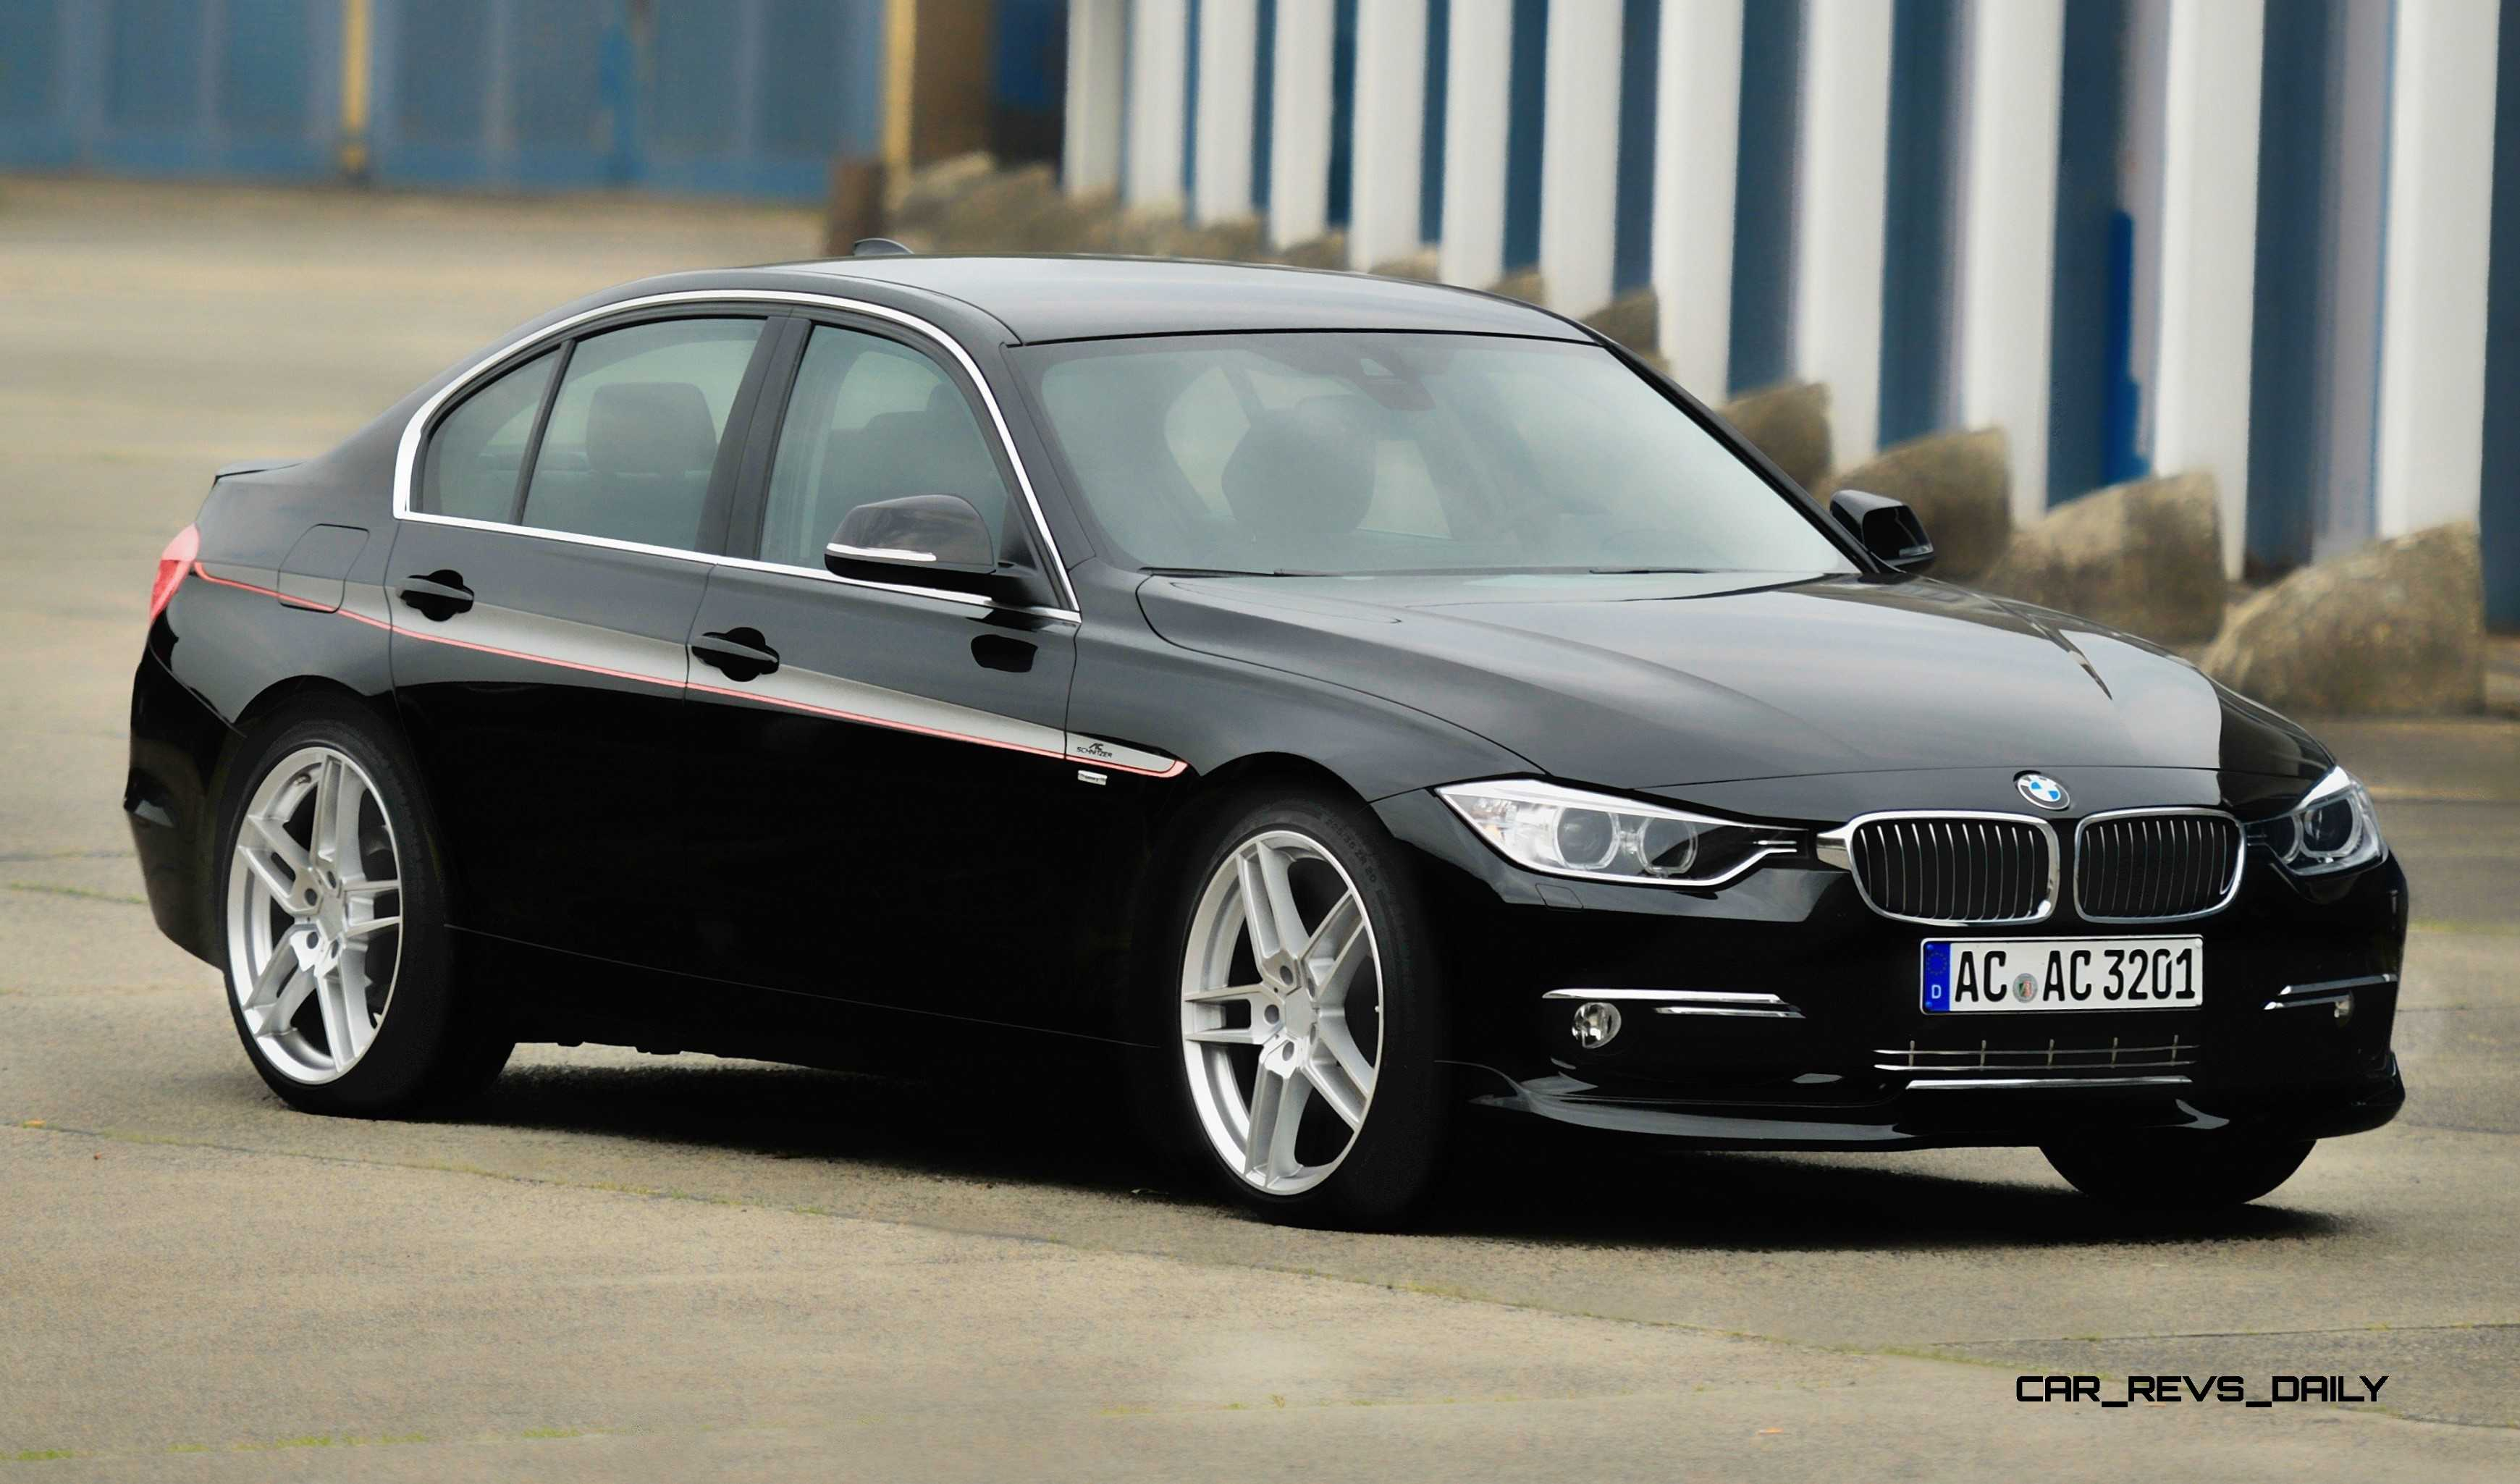 AC Schnitzer Upgrades Gallery For BMW Series F - Bmw 3 series f30